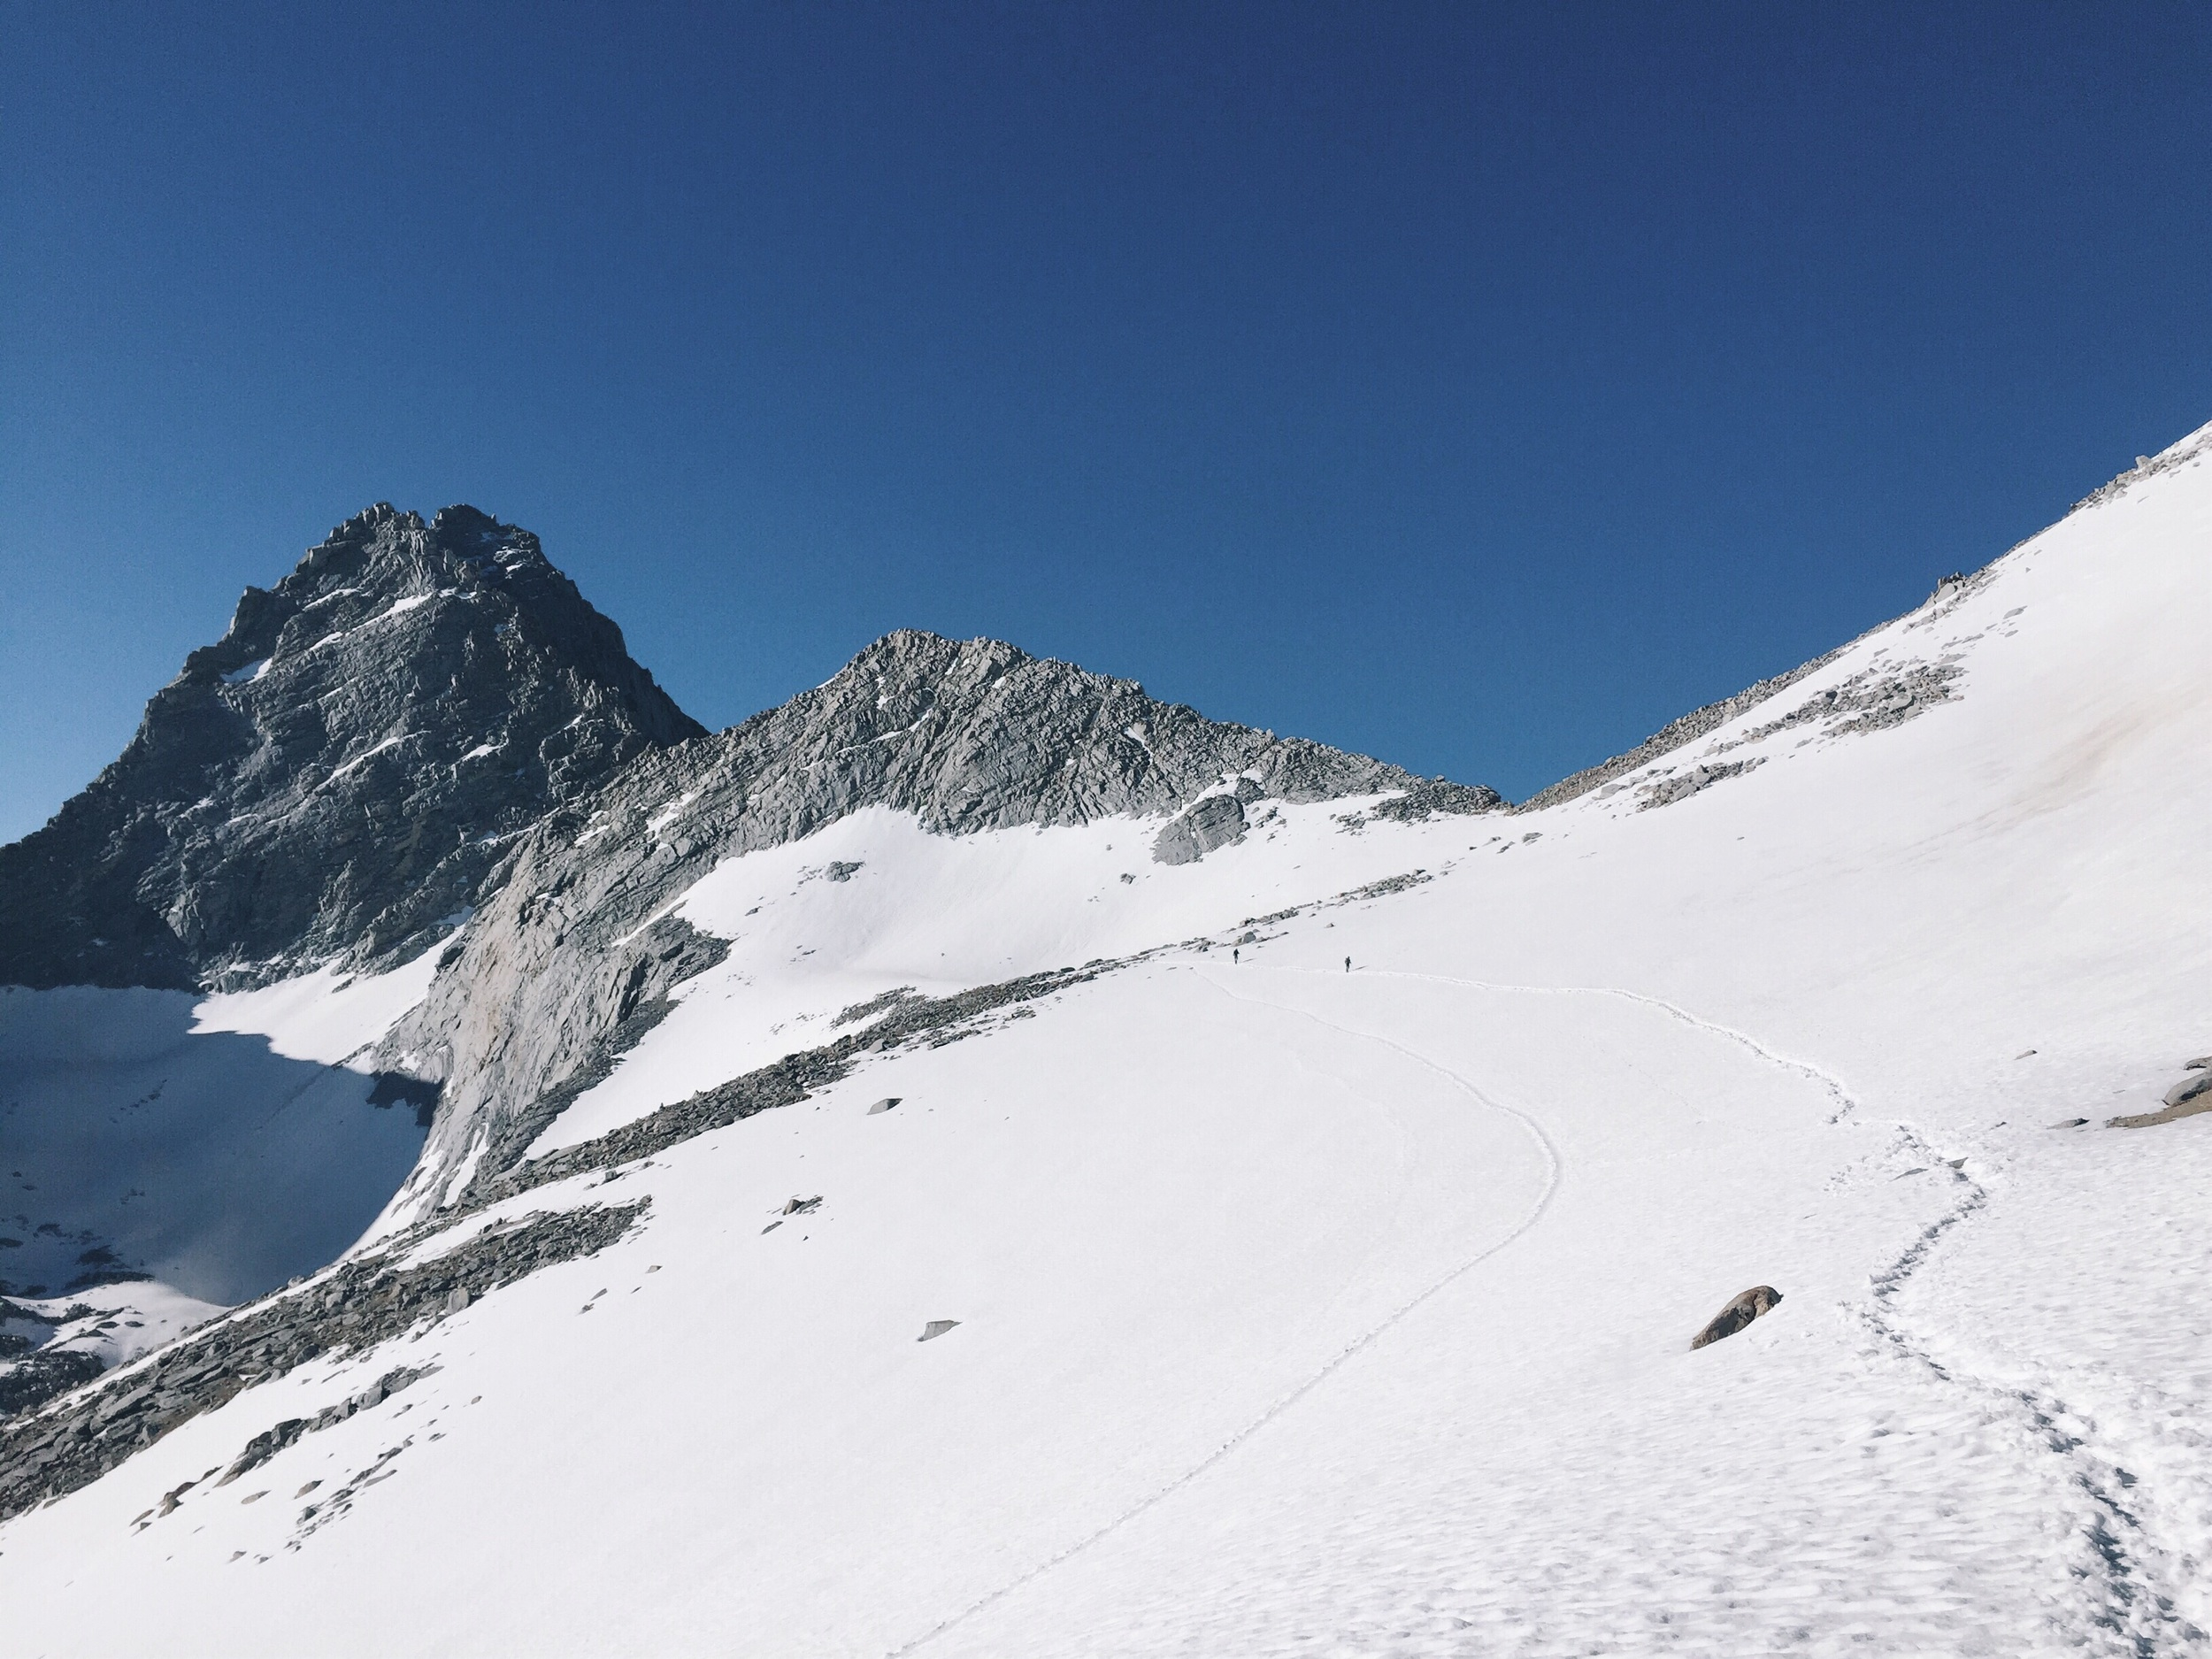 Looking back up at the pass.